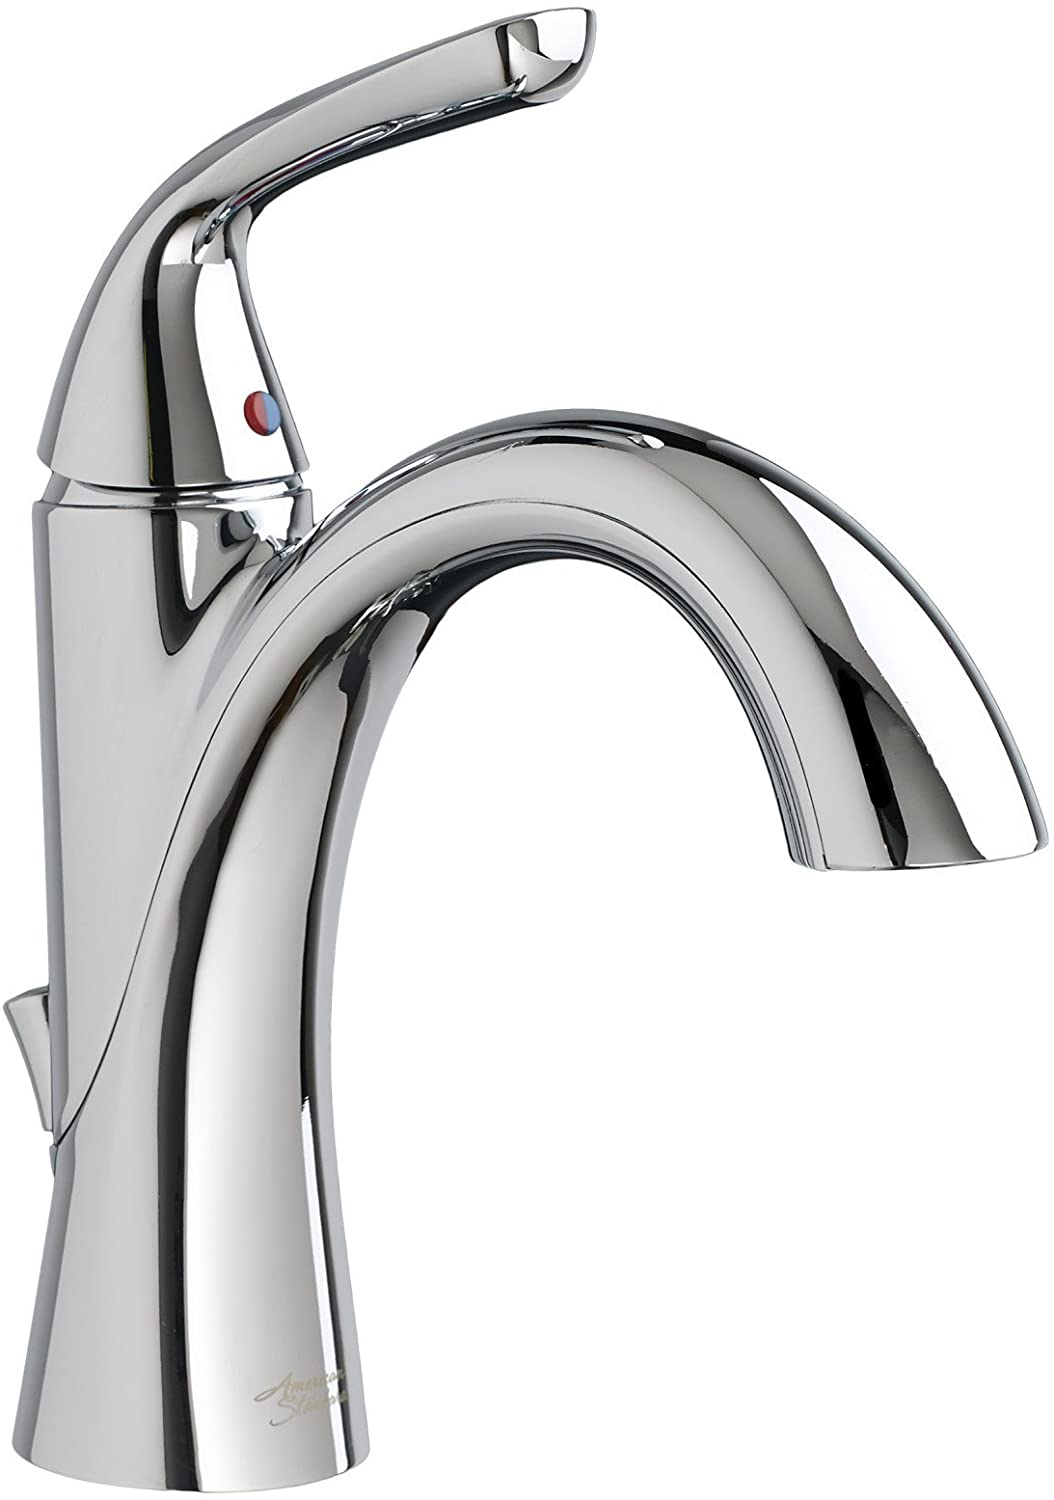 American Standard 7186101.002 Fluent Single Control Bathroom Faucet with Pop-up Drain, 18 in x 18 in, Polished Chrome